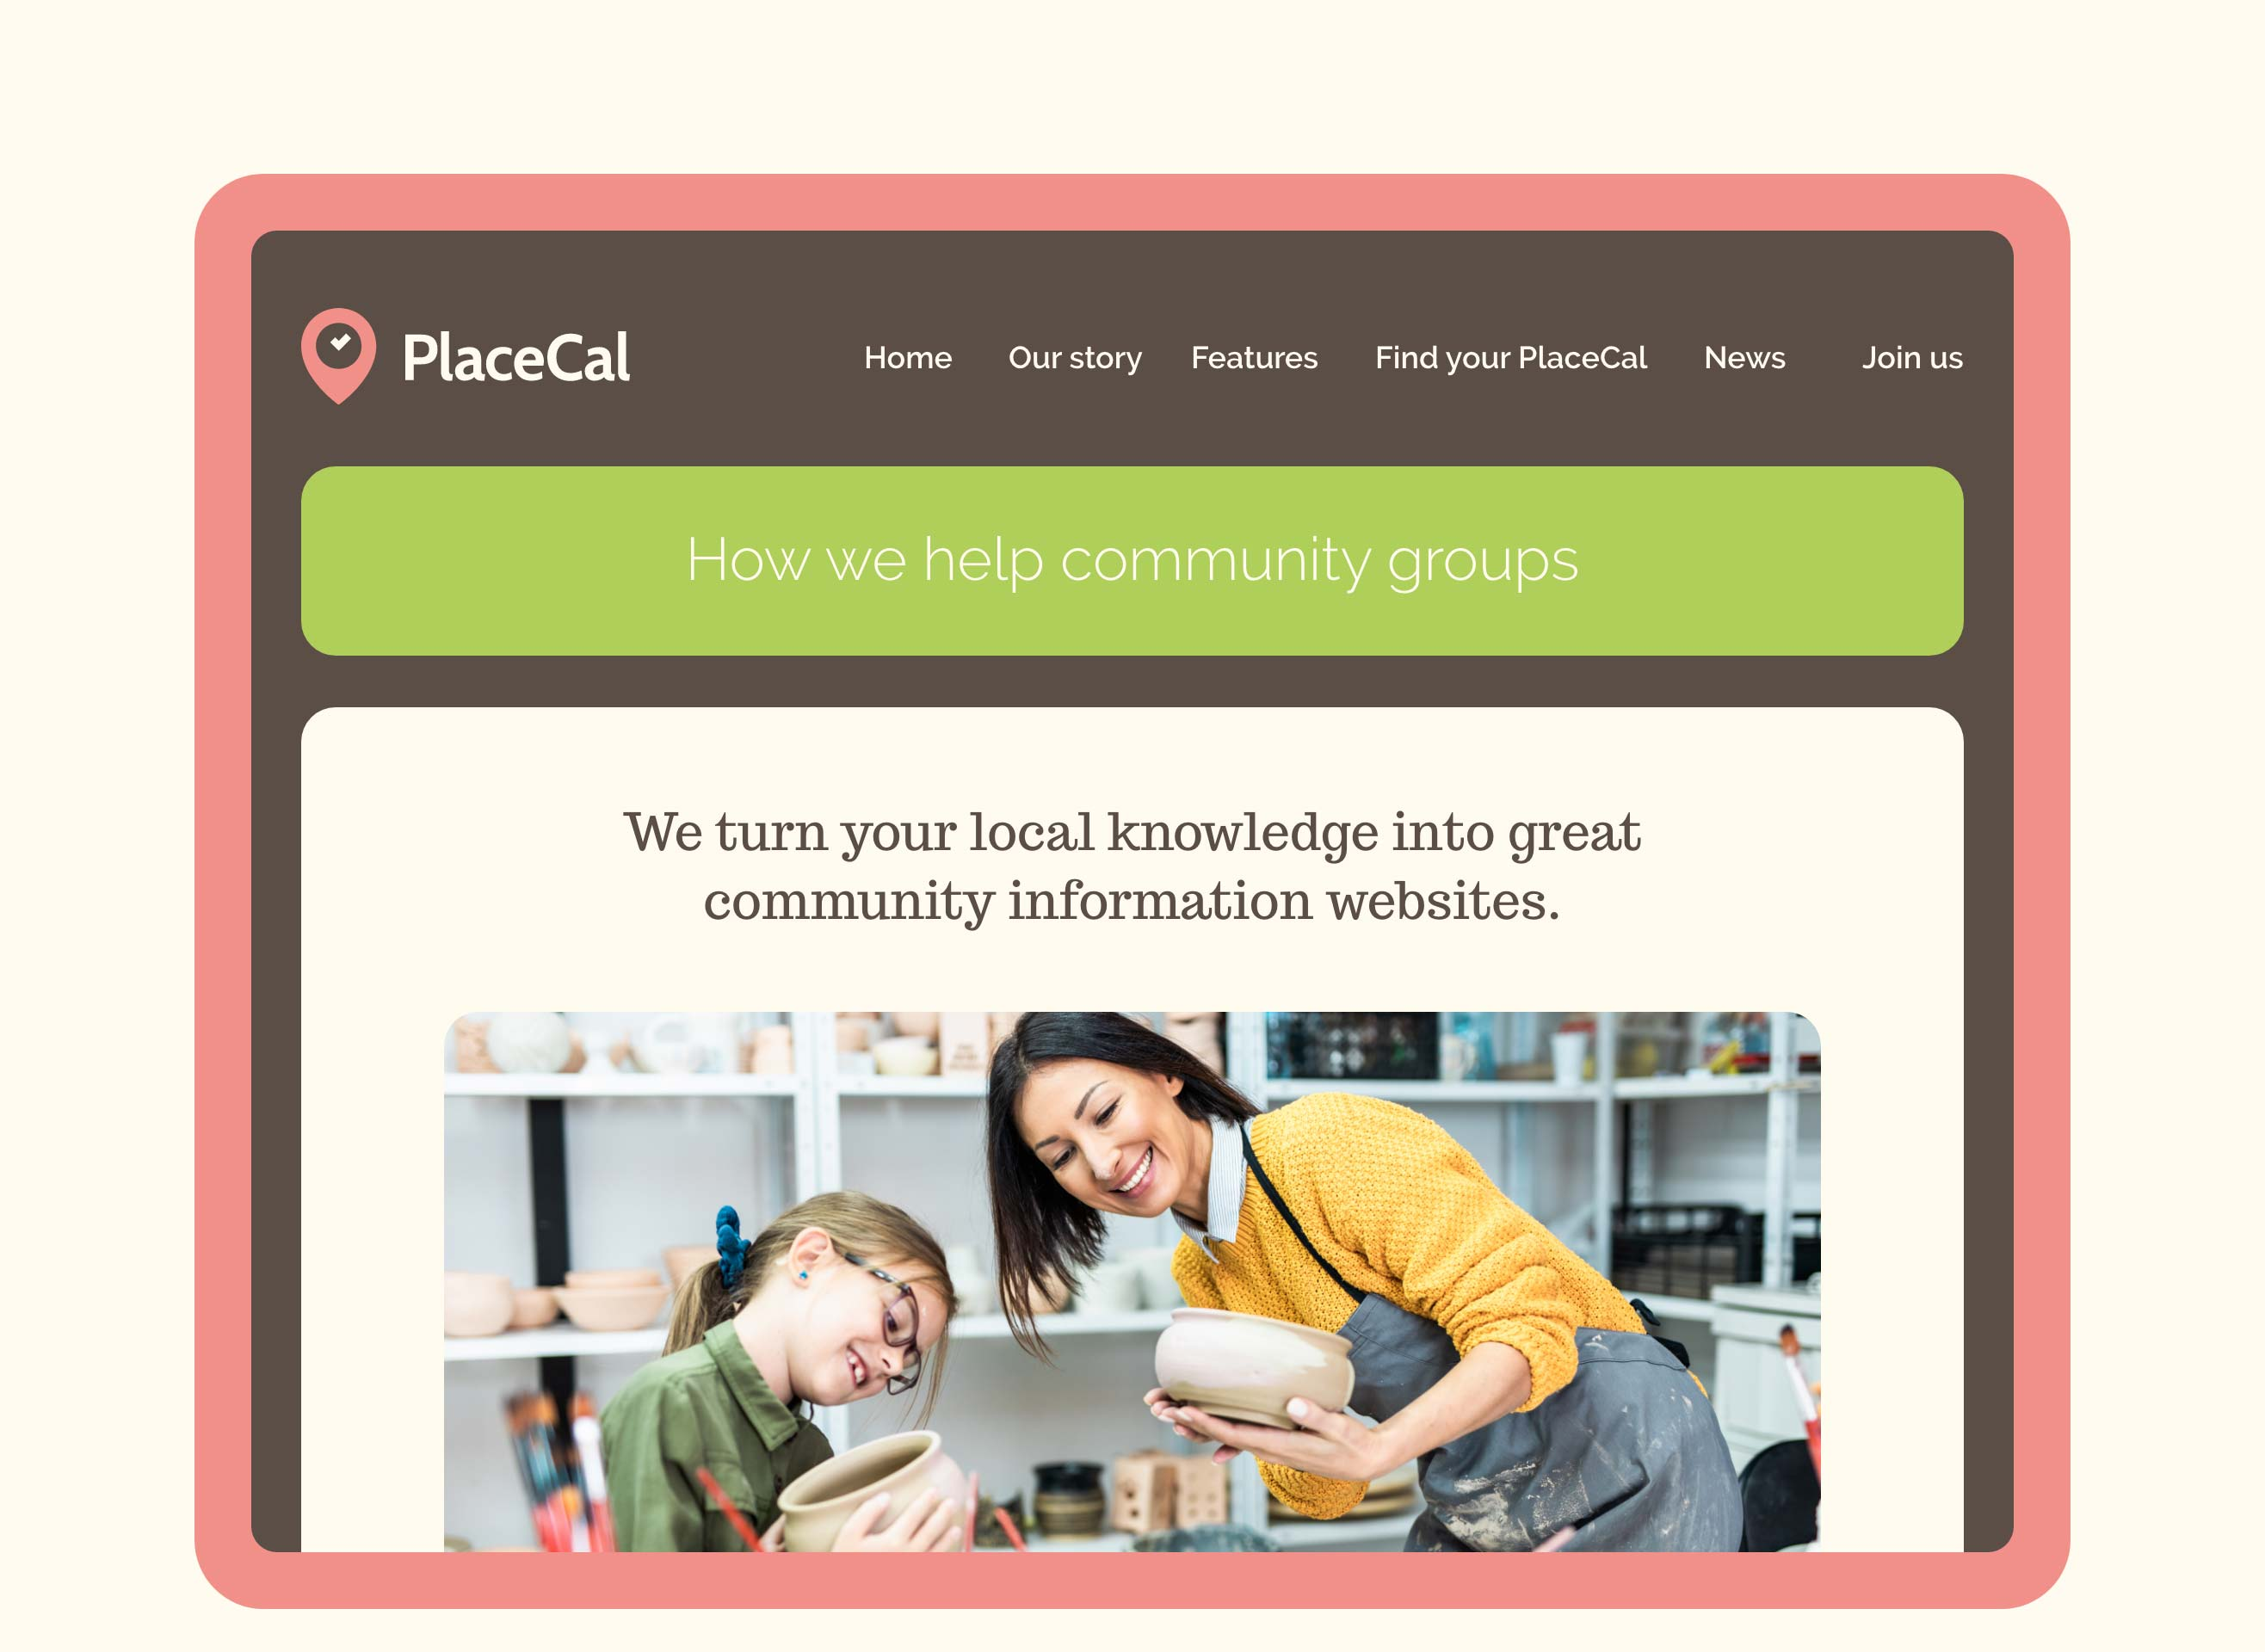 The PlaceCal website demonstrated in its responsive tablet state, the page talks about how it helps community groups.